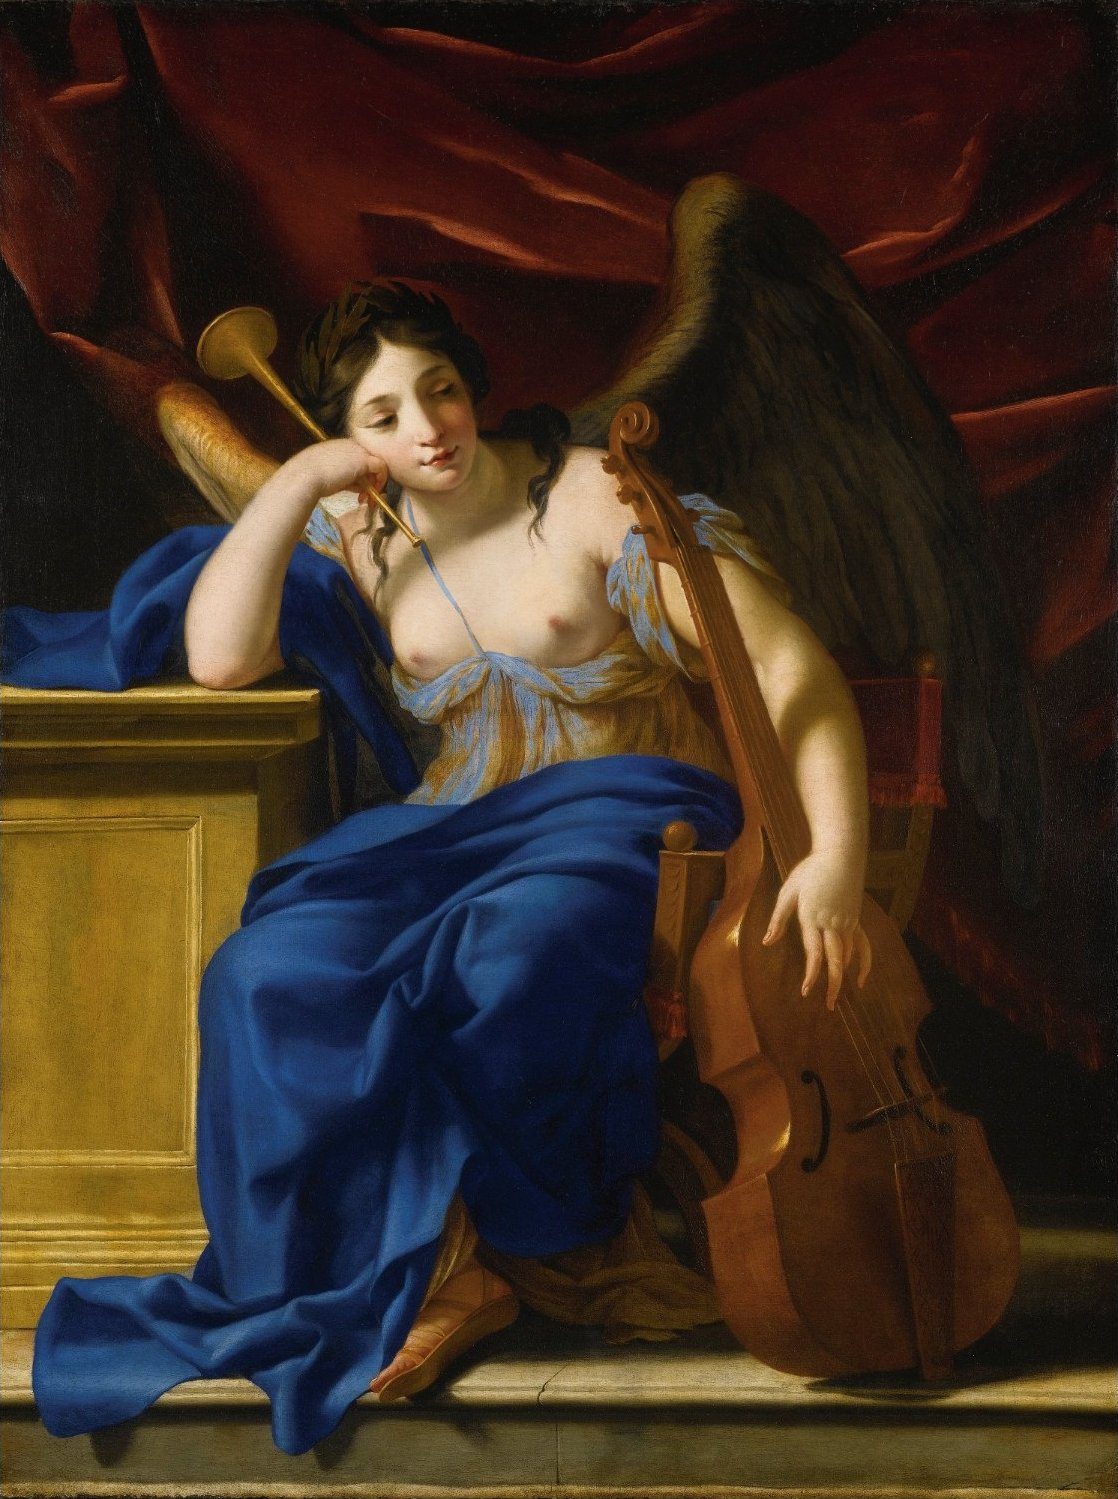 An Allegory of Poetry by Eustache Le Sueur, oil on canvas